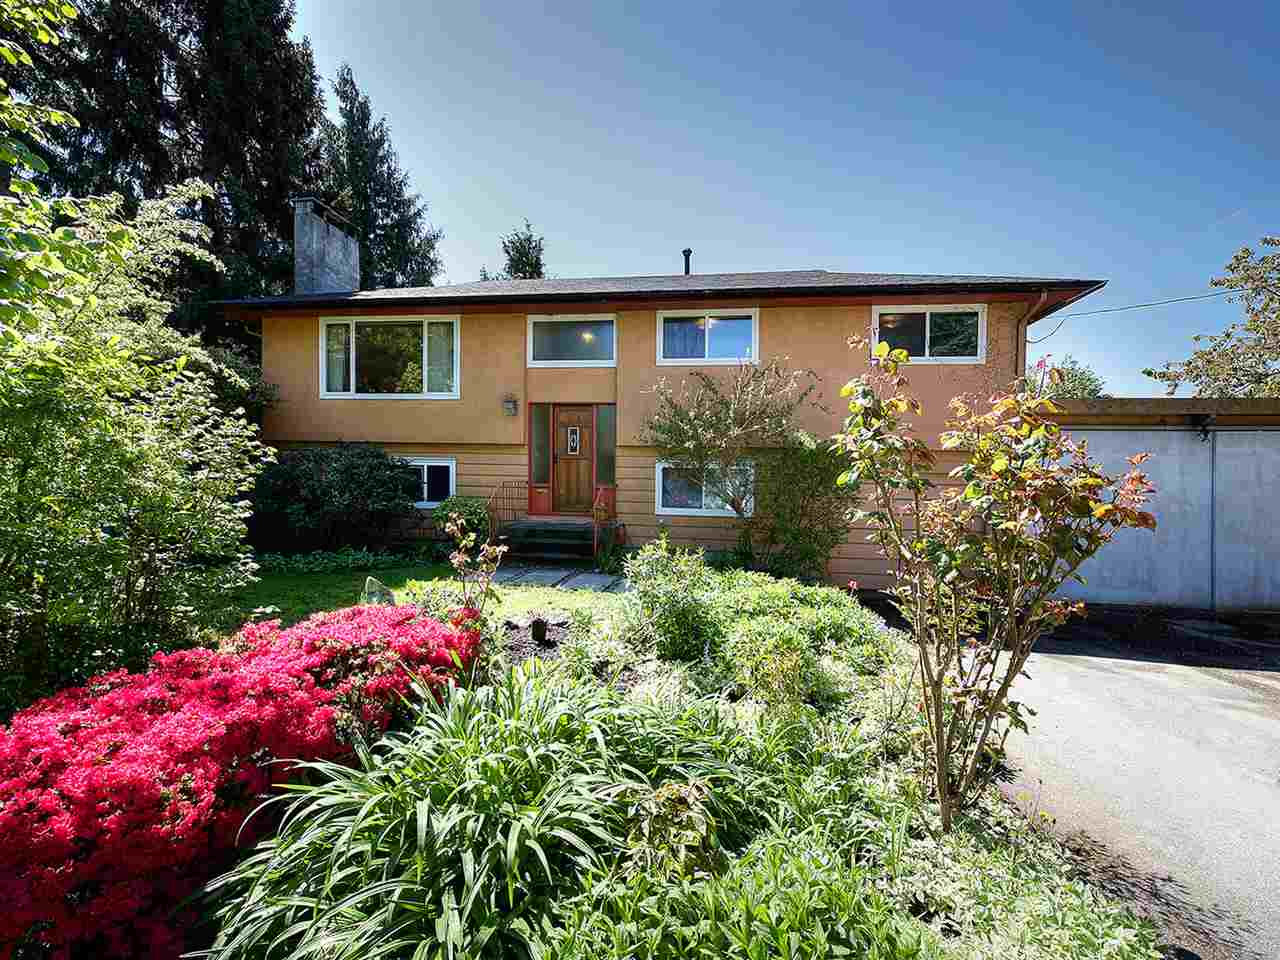 "Main Photo: 5110 10A Avenue in Delta: Tsawwassen Central House for sale in ""TSAWWASSEN CENTRAL"" (Tsawwassen)  : MLS® # R2164700"